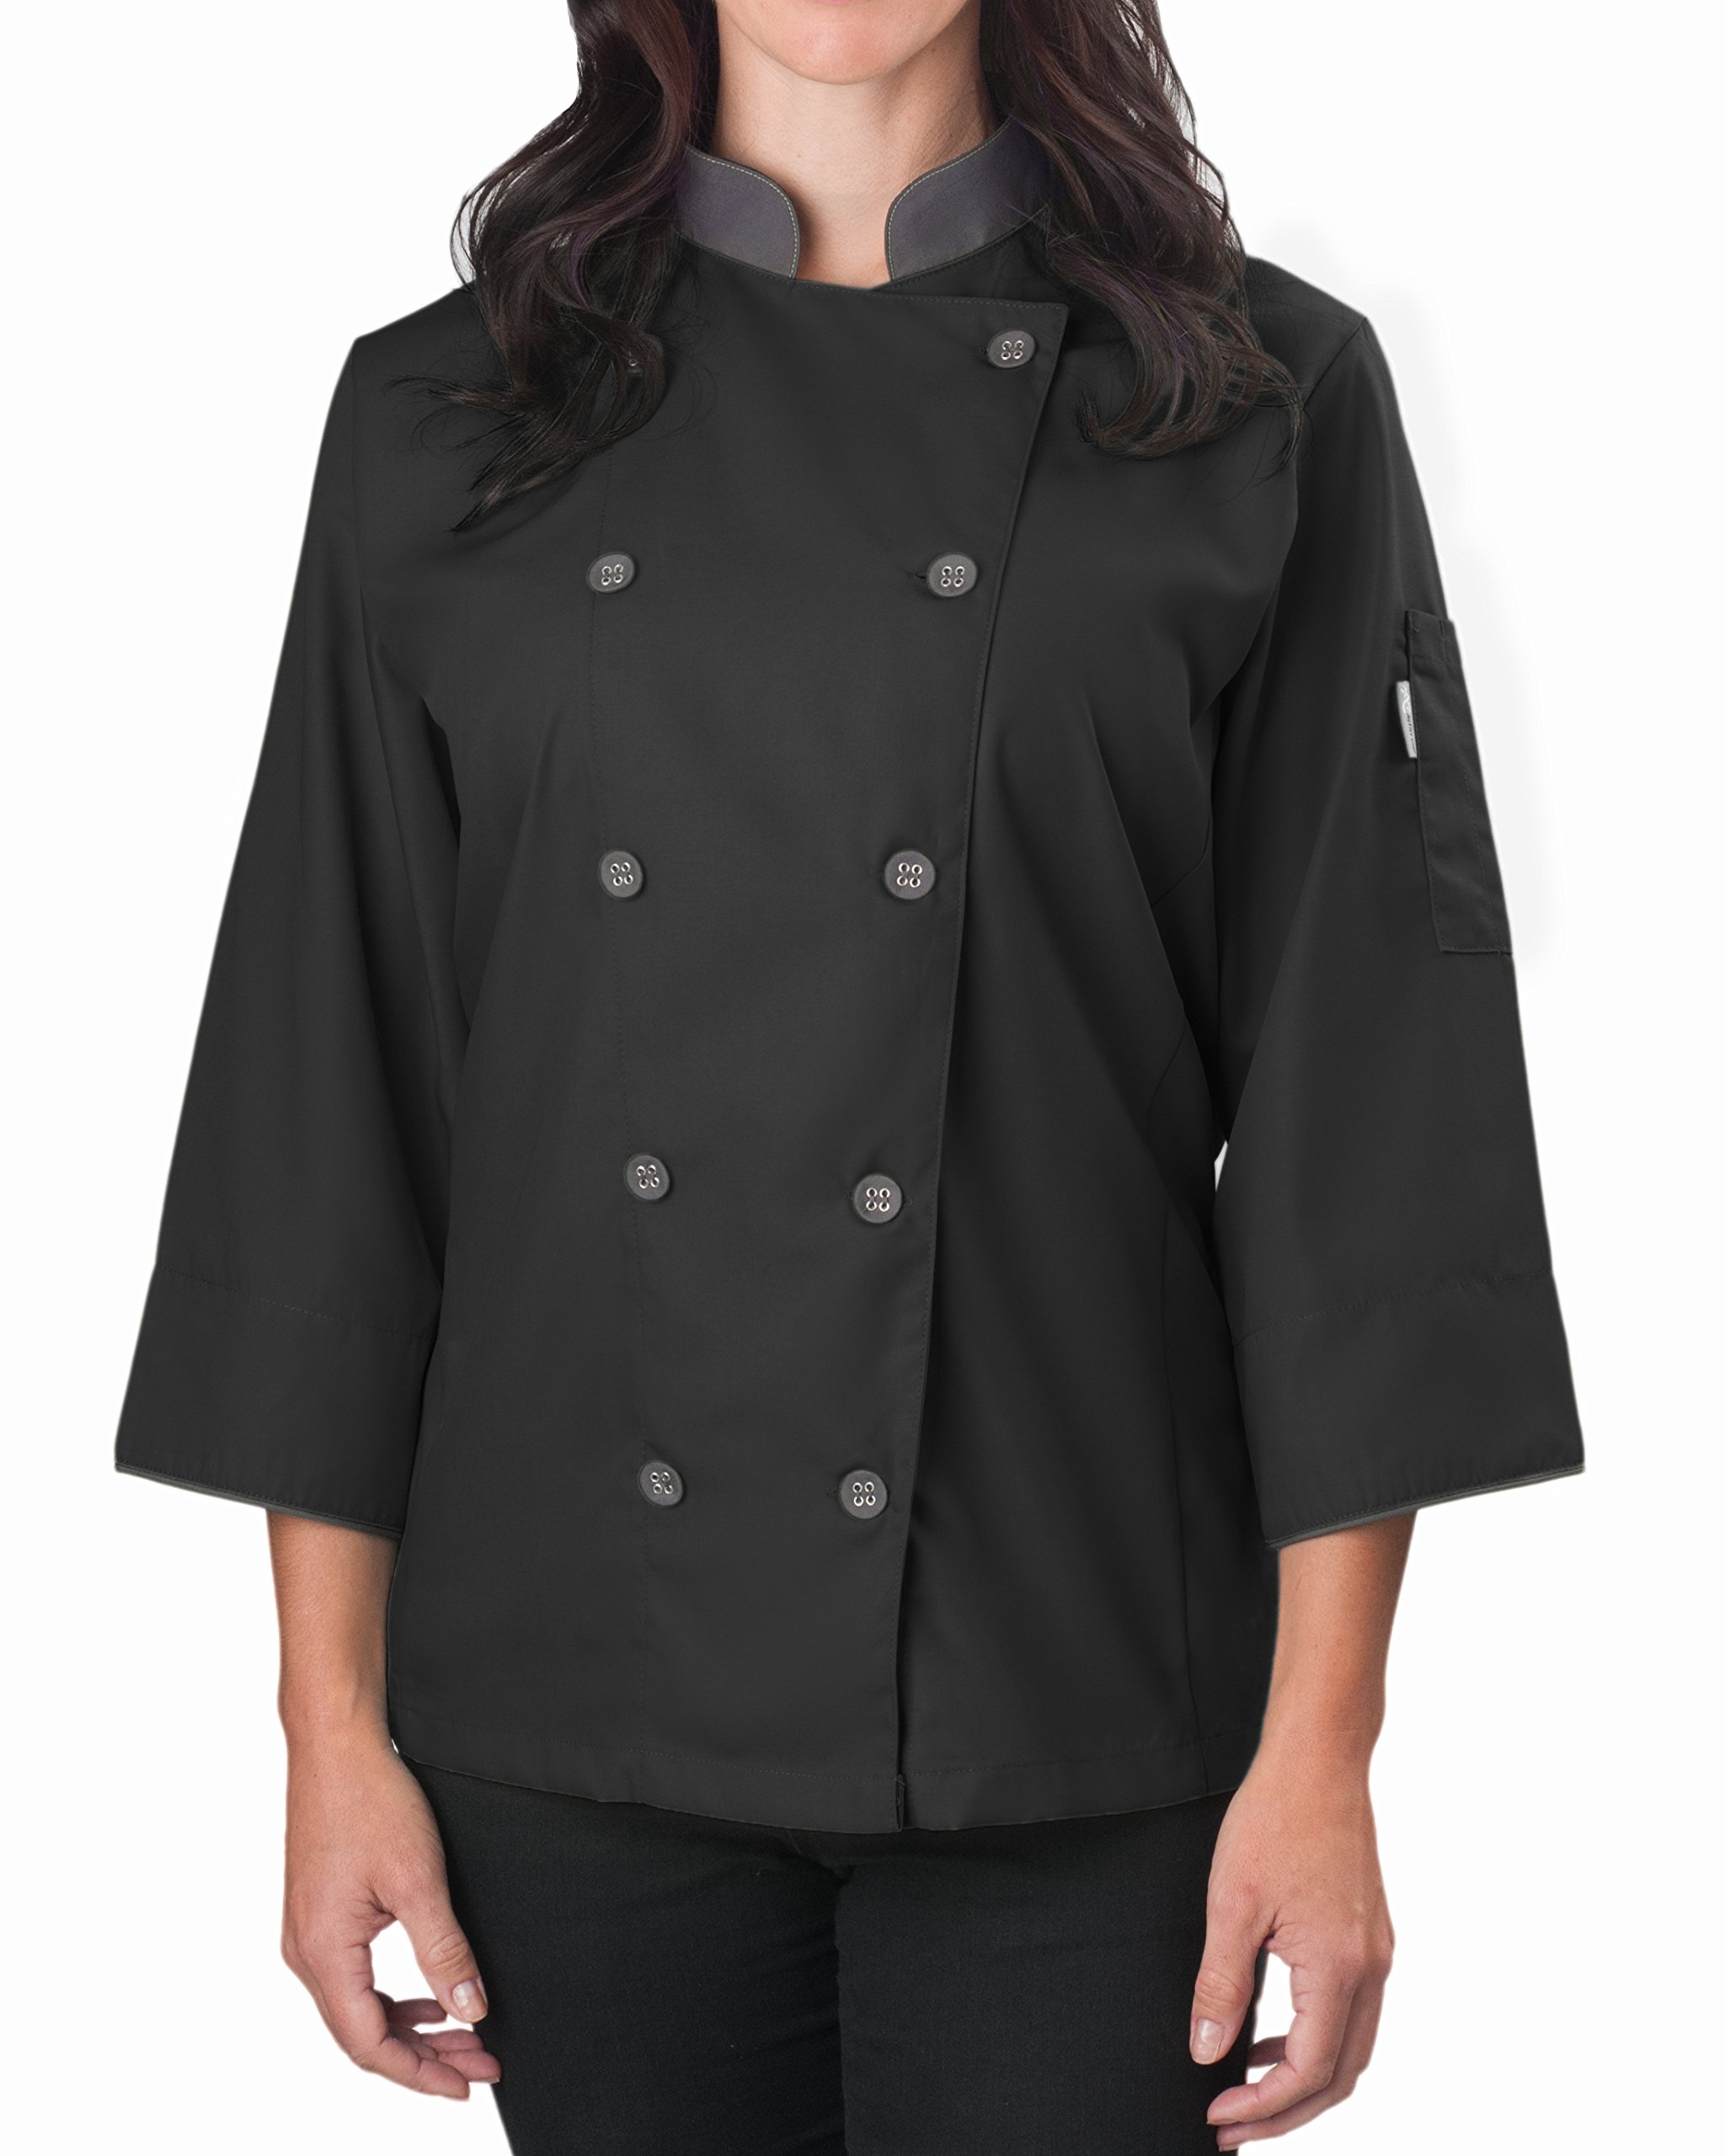 KNG Women's ¾ Sleeve Active Chef Coat, Black with Slate Accent, 2XL